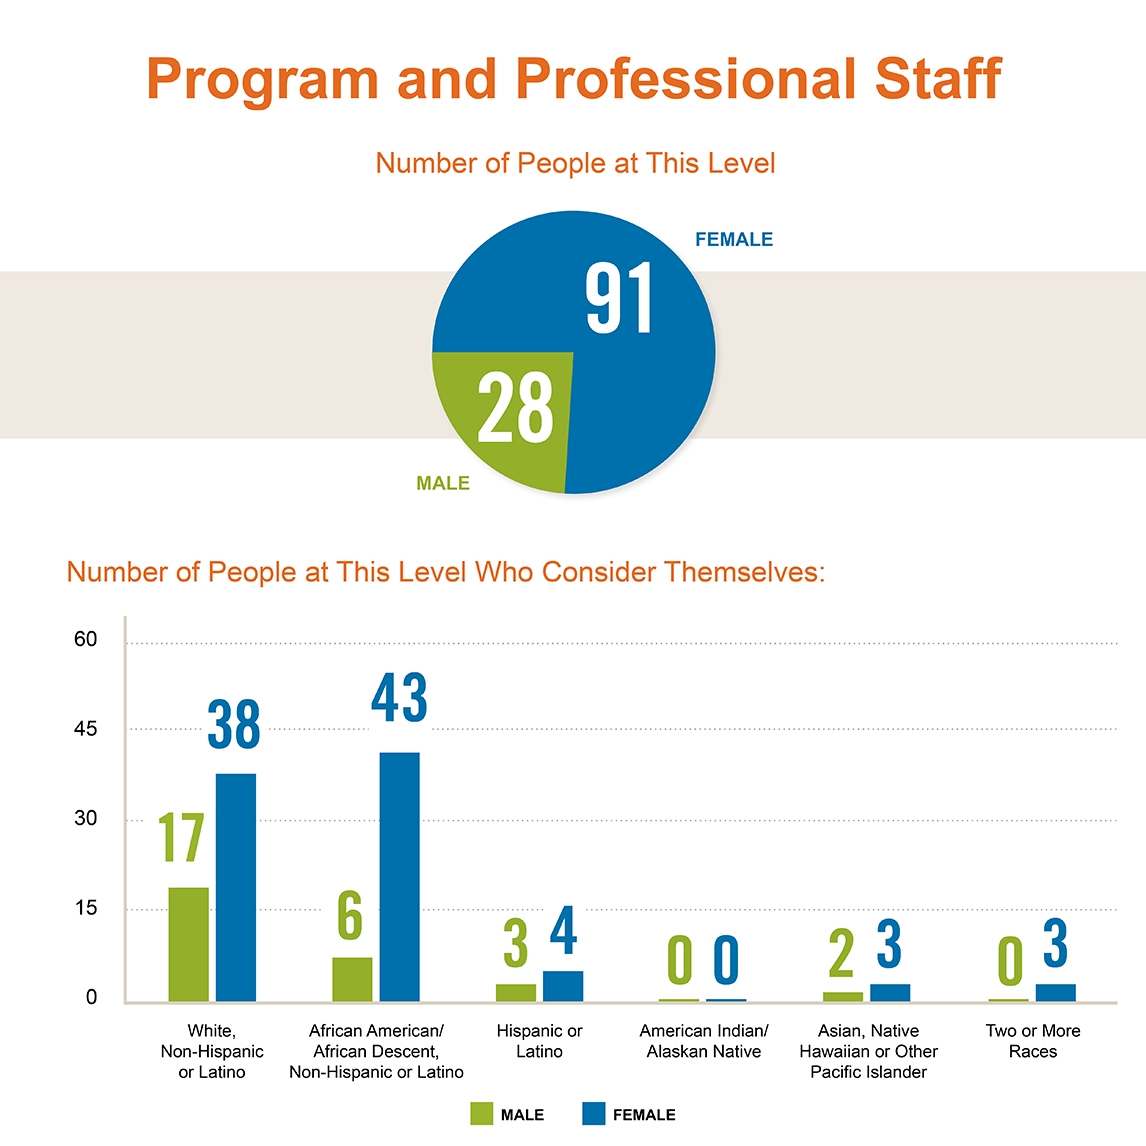 Diversity of Casey's Program and Professional Staff